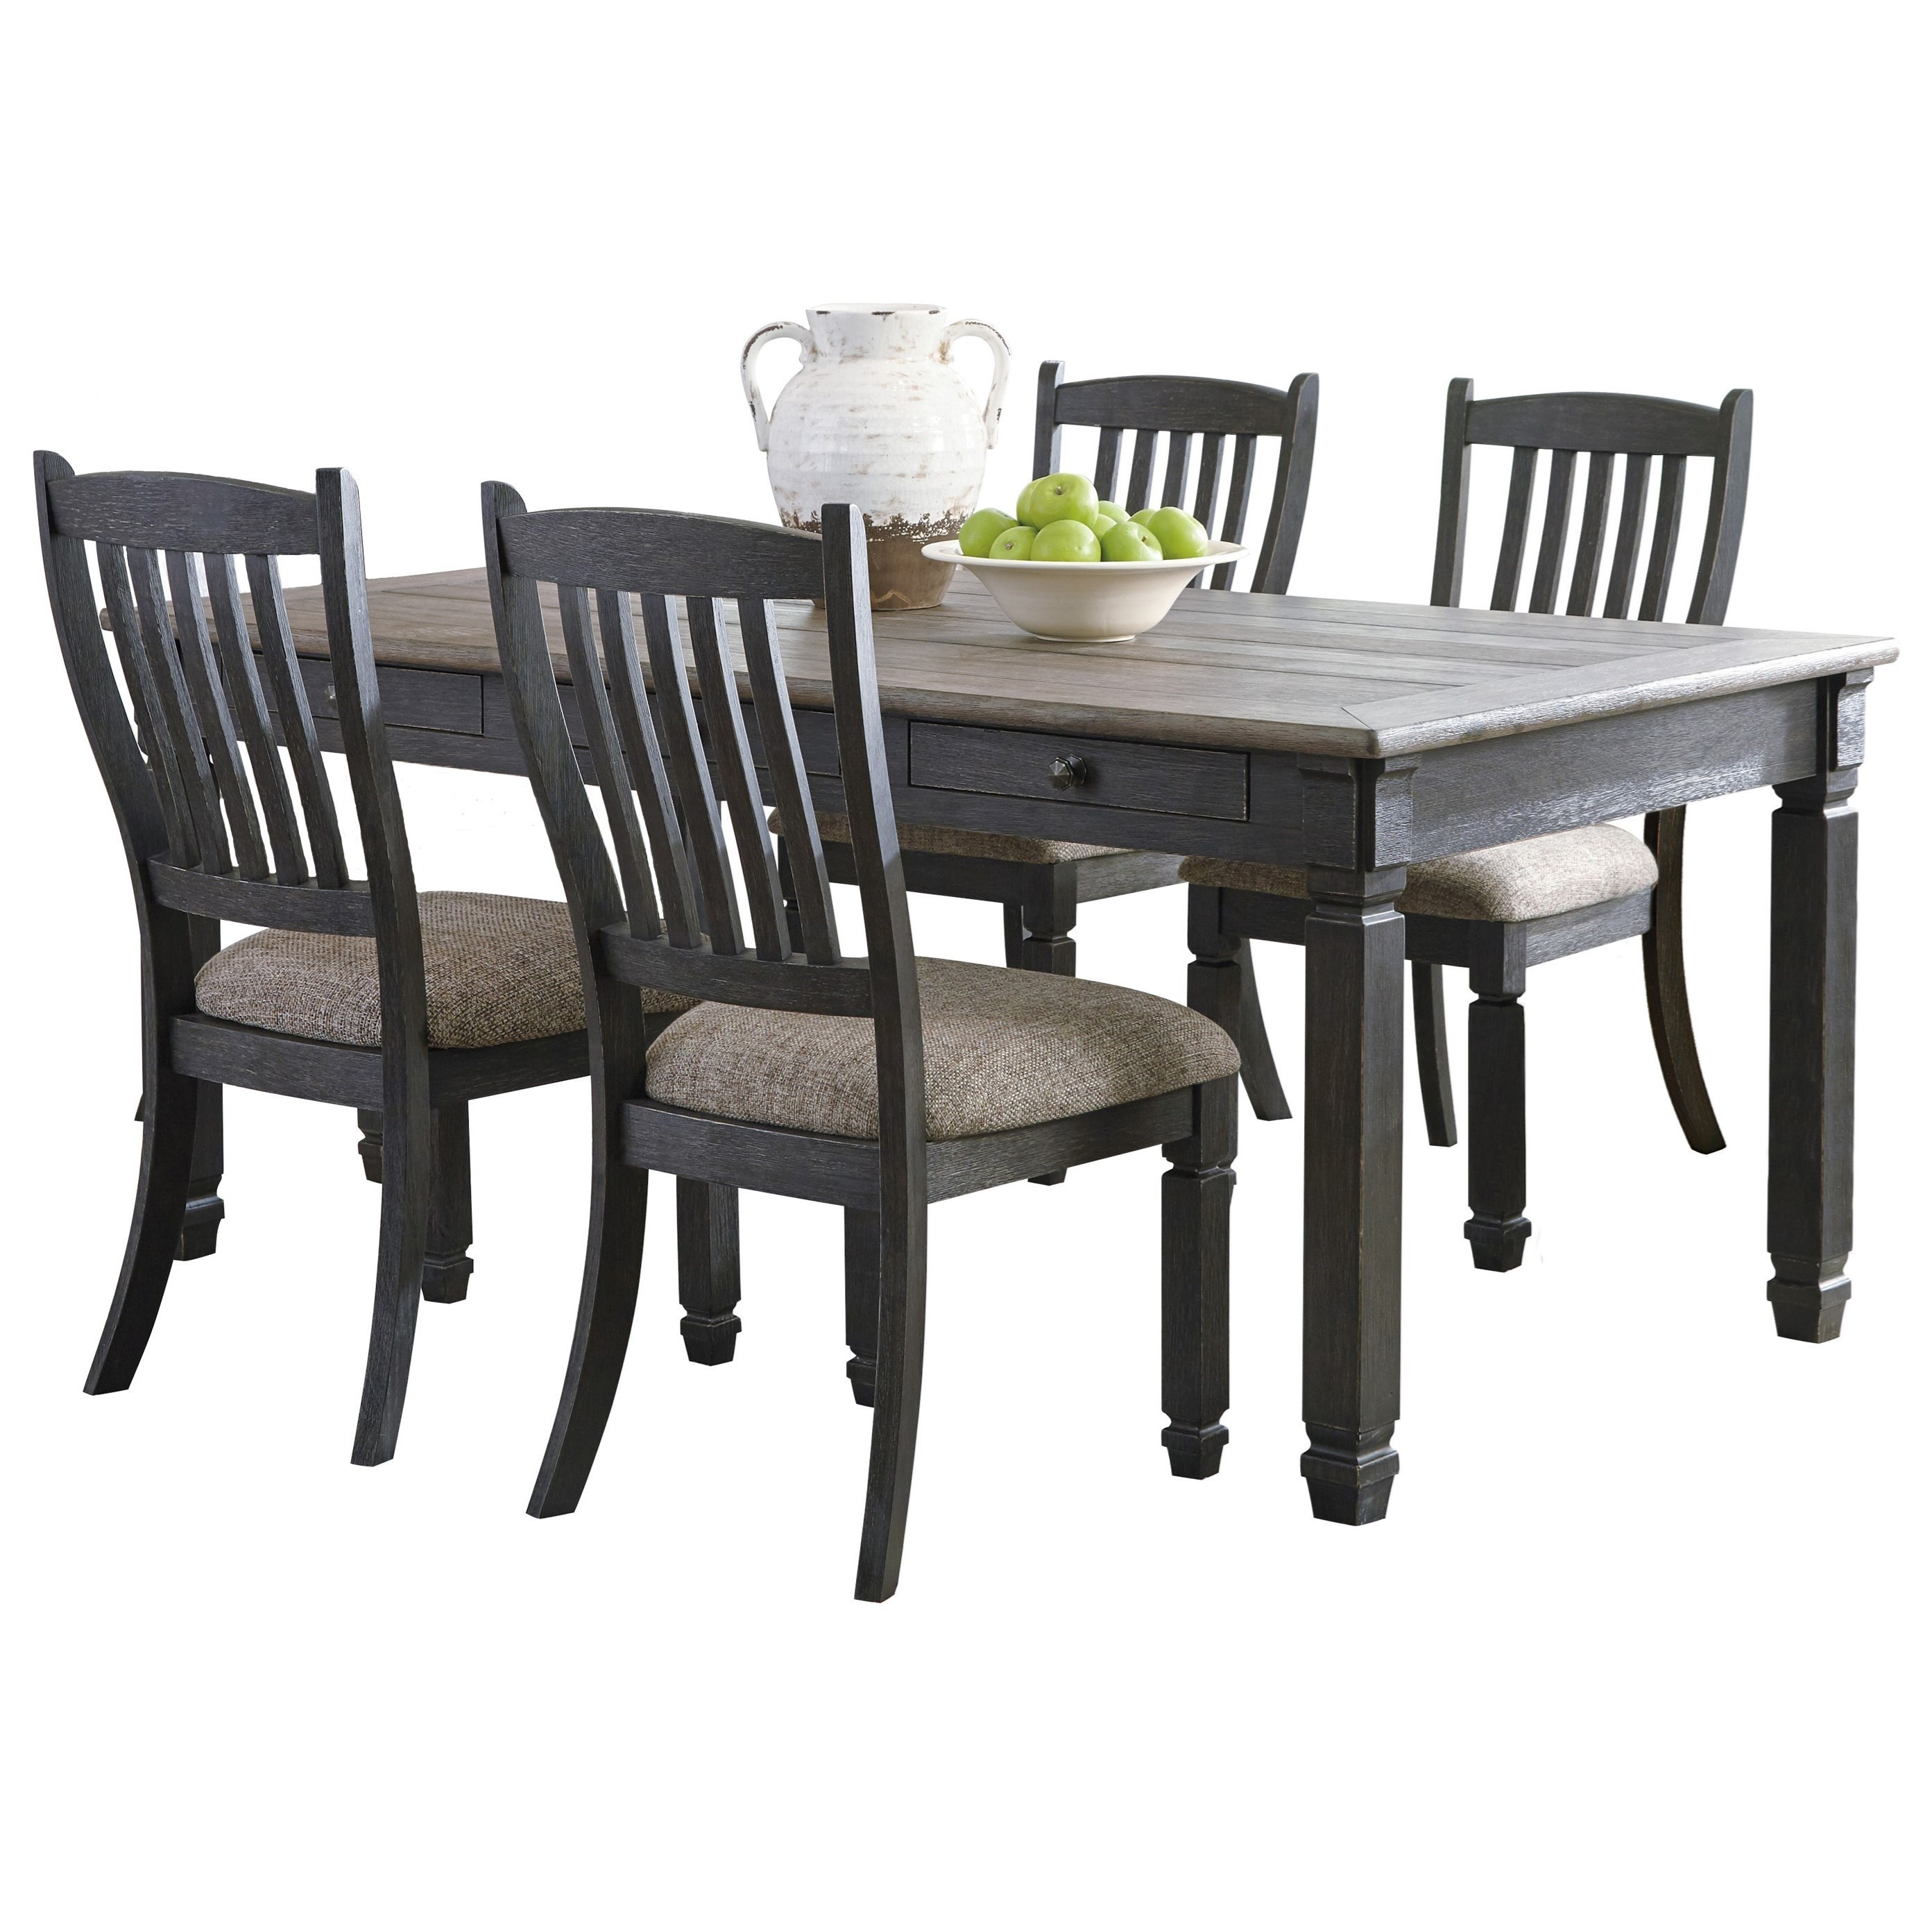 Delicieux Signature Design By Ashley Tyler Creek5 Piece Table And Chair Set ...